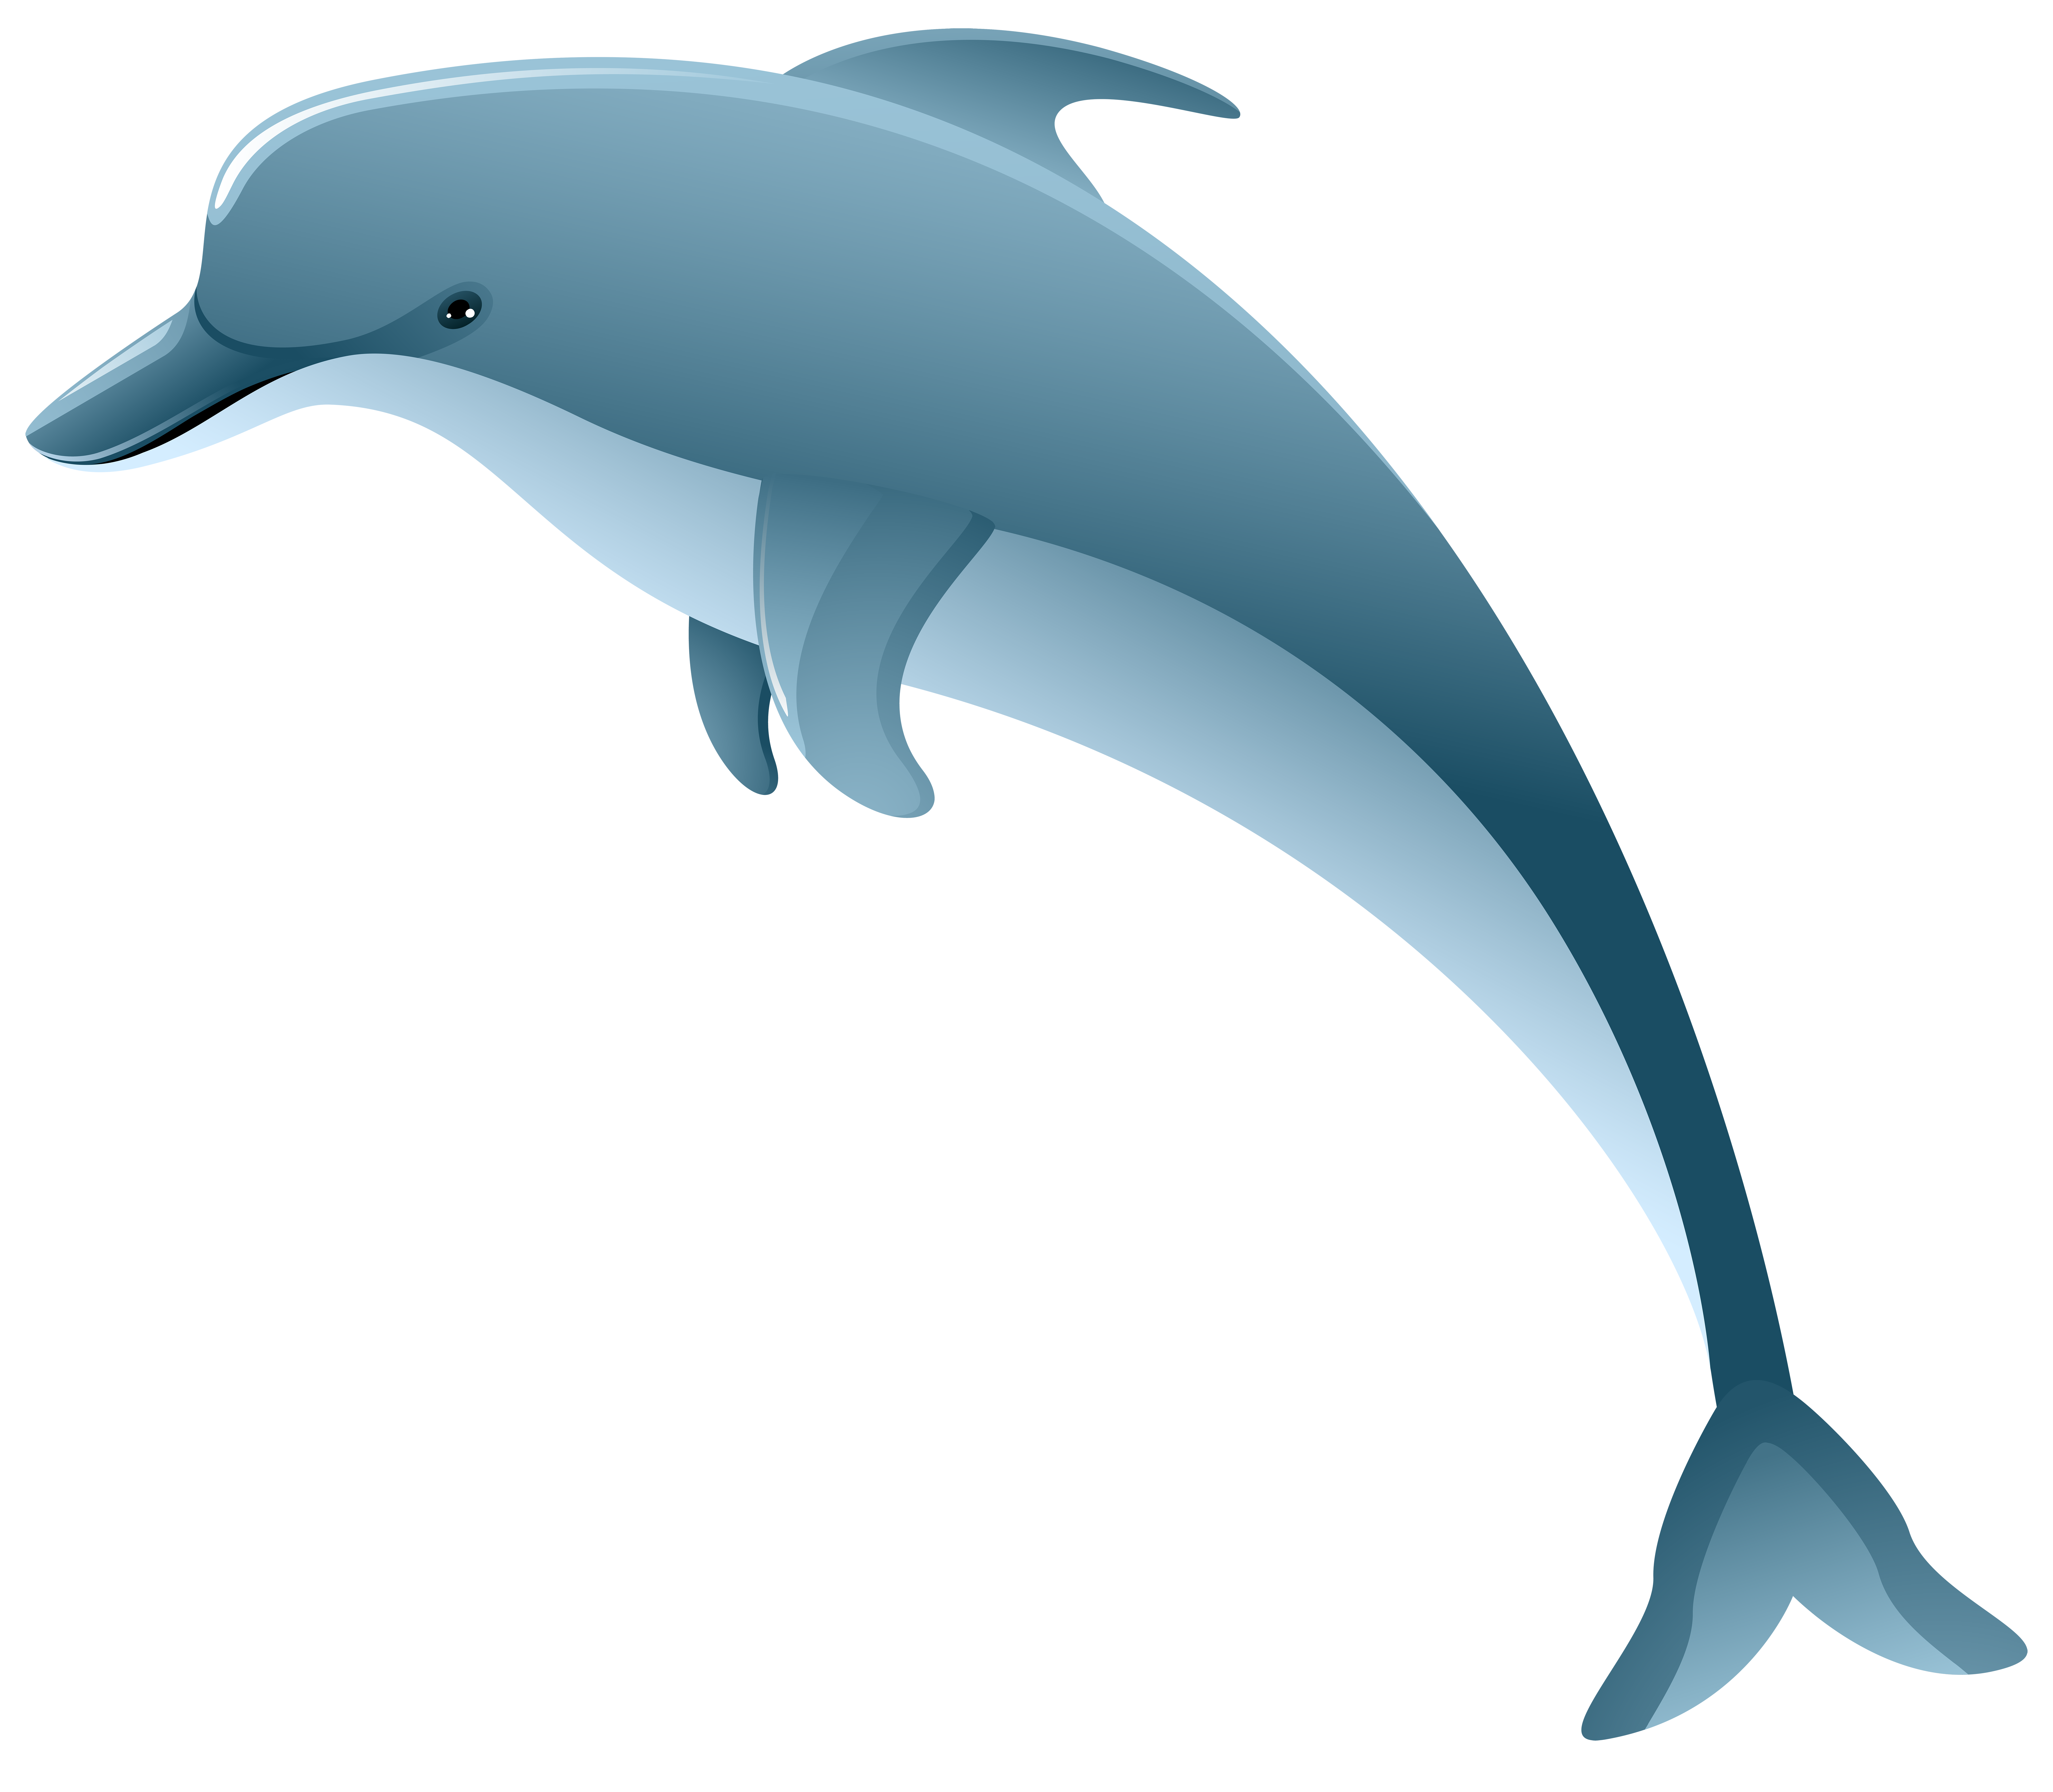 free dolphin clipart at getdrawings com free for personal use free rh getdrawings com free dolphin clipart black and white